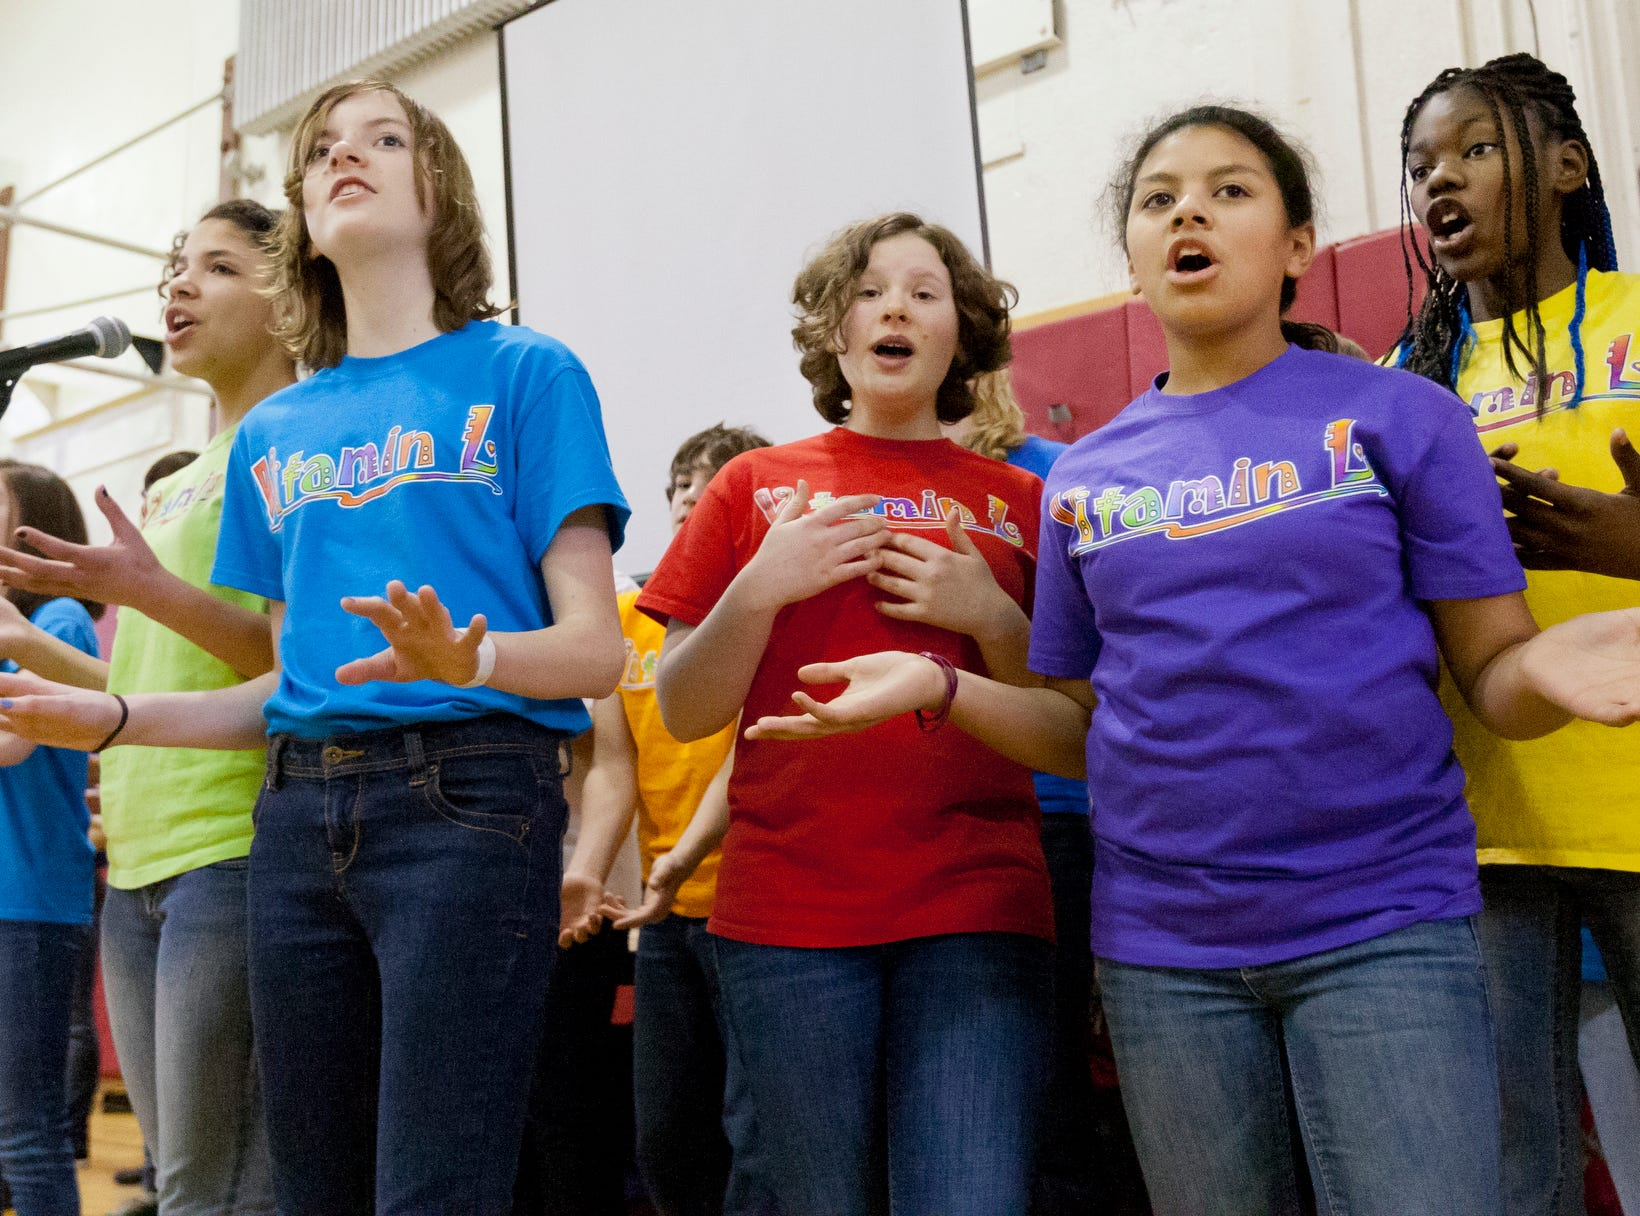 2013: The Vitamin L chorus sings new songs about Martin Luther King Jr.  during their three-song performance Monday in the gym at Beverly J. Martin school during the annual free community luncheon and celebration of the life of Dr. Martin Luther King, Jr.